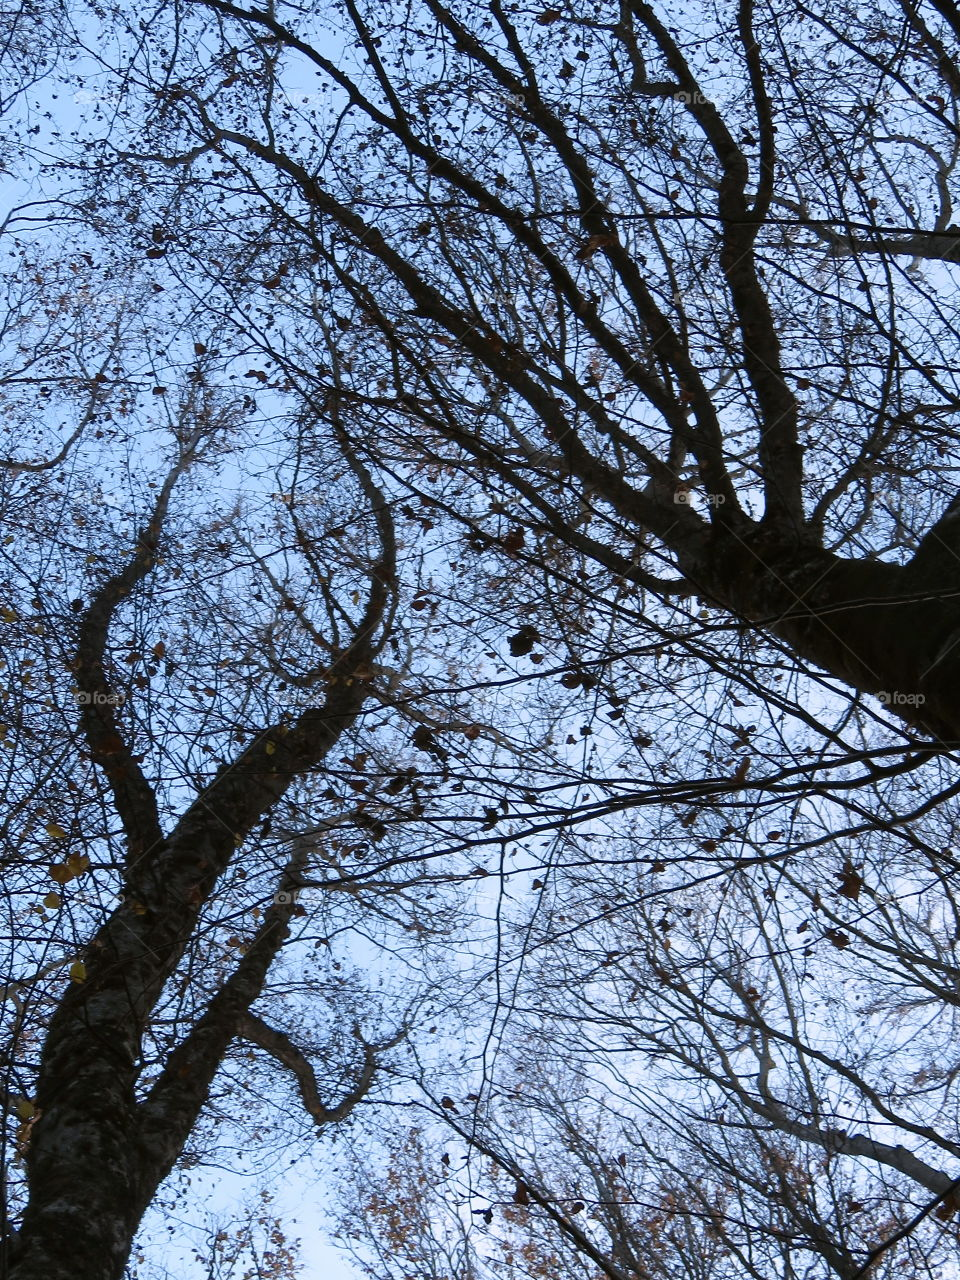 view through the treetops from the bottom To the top